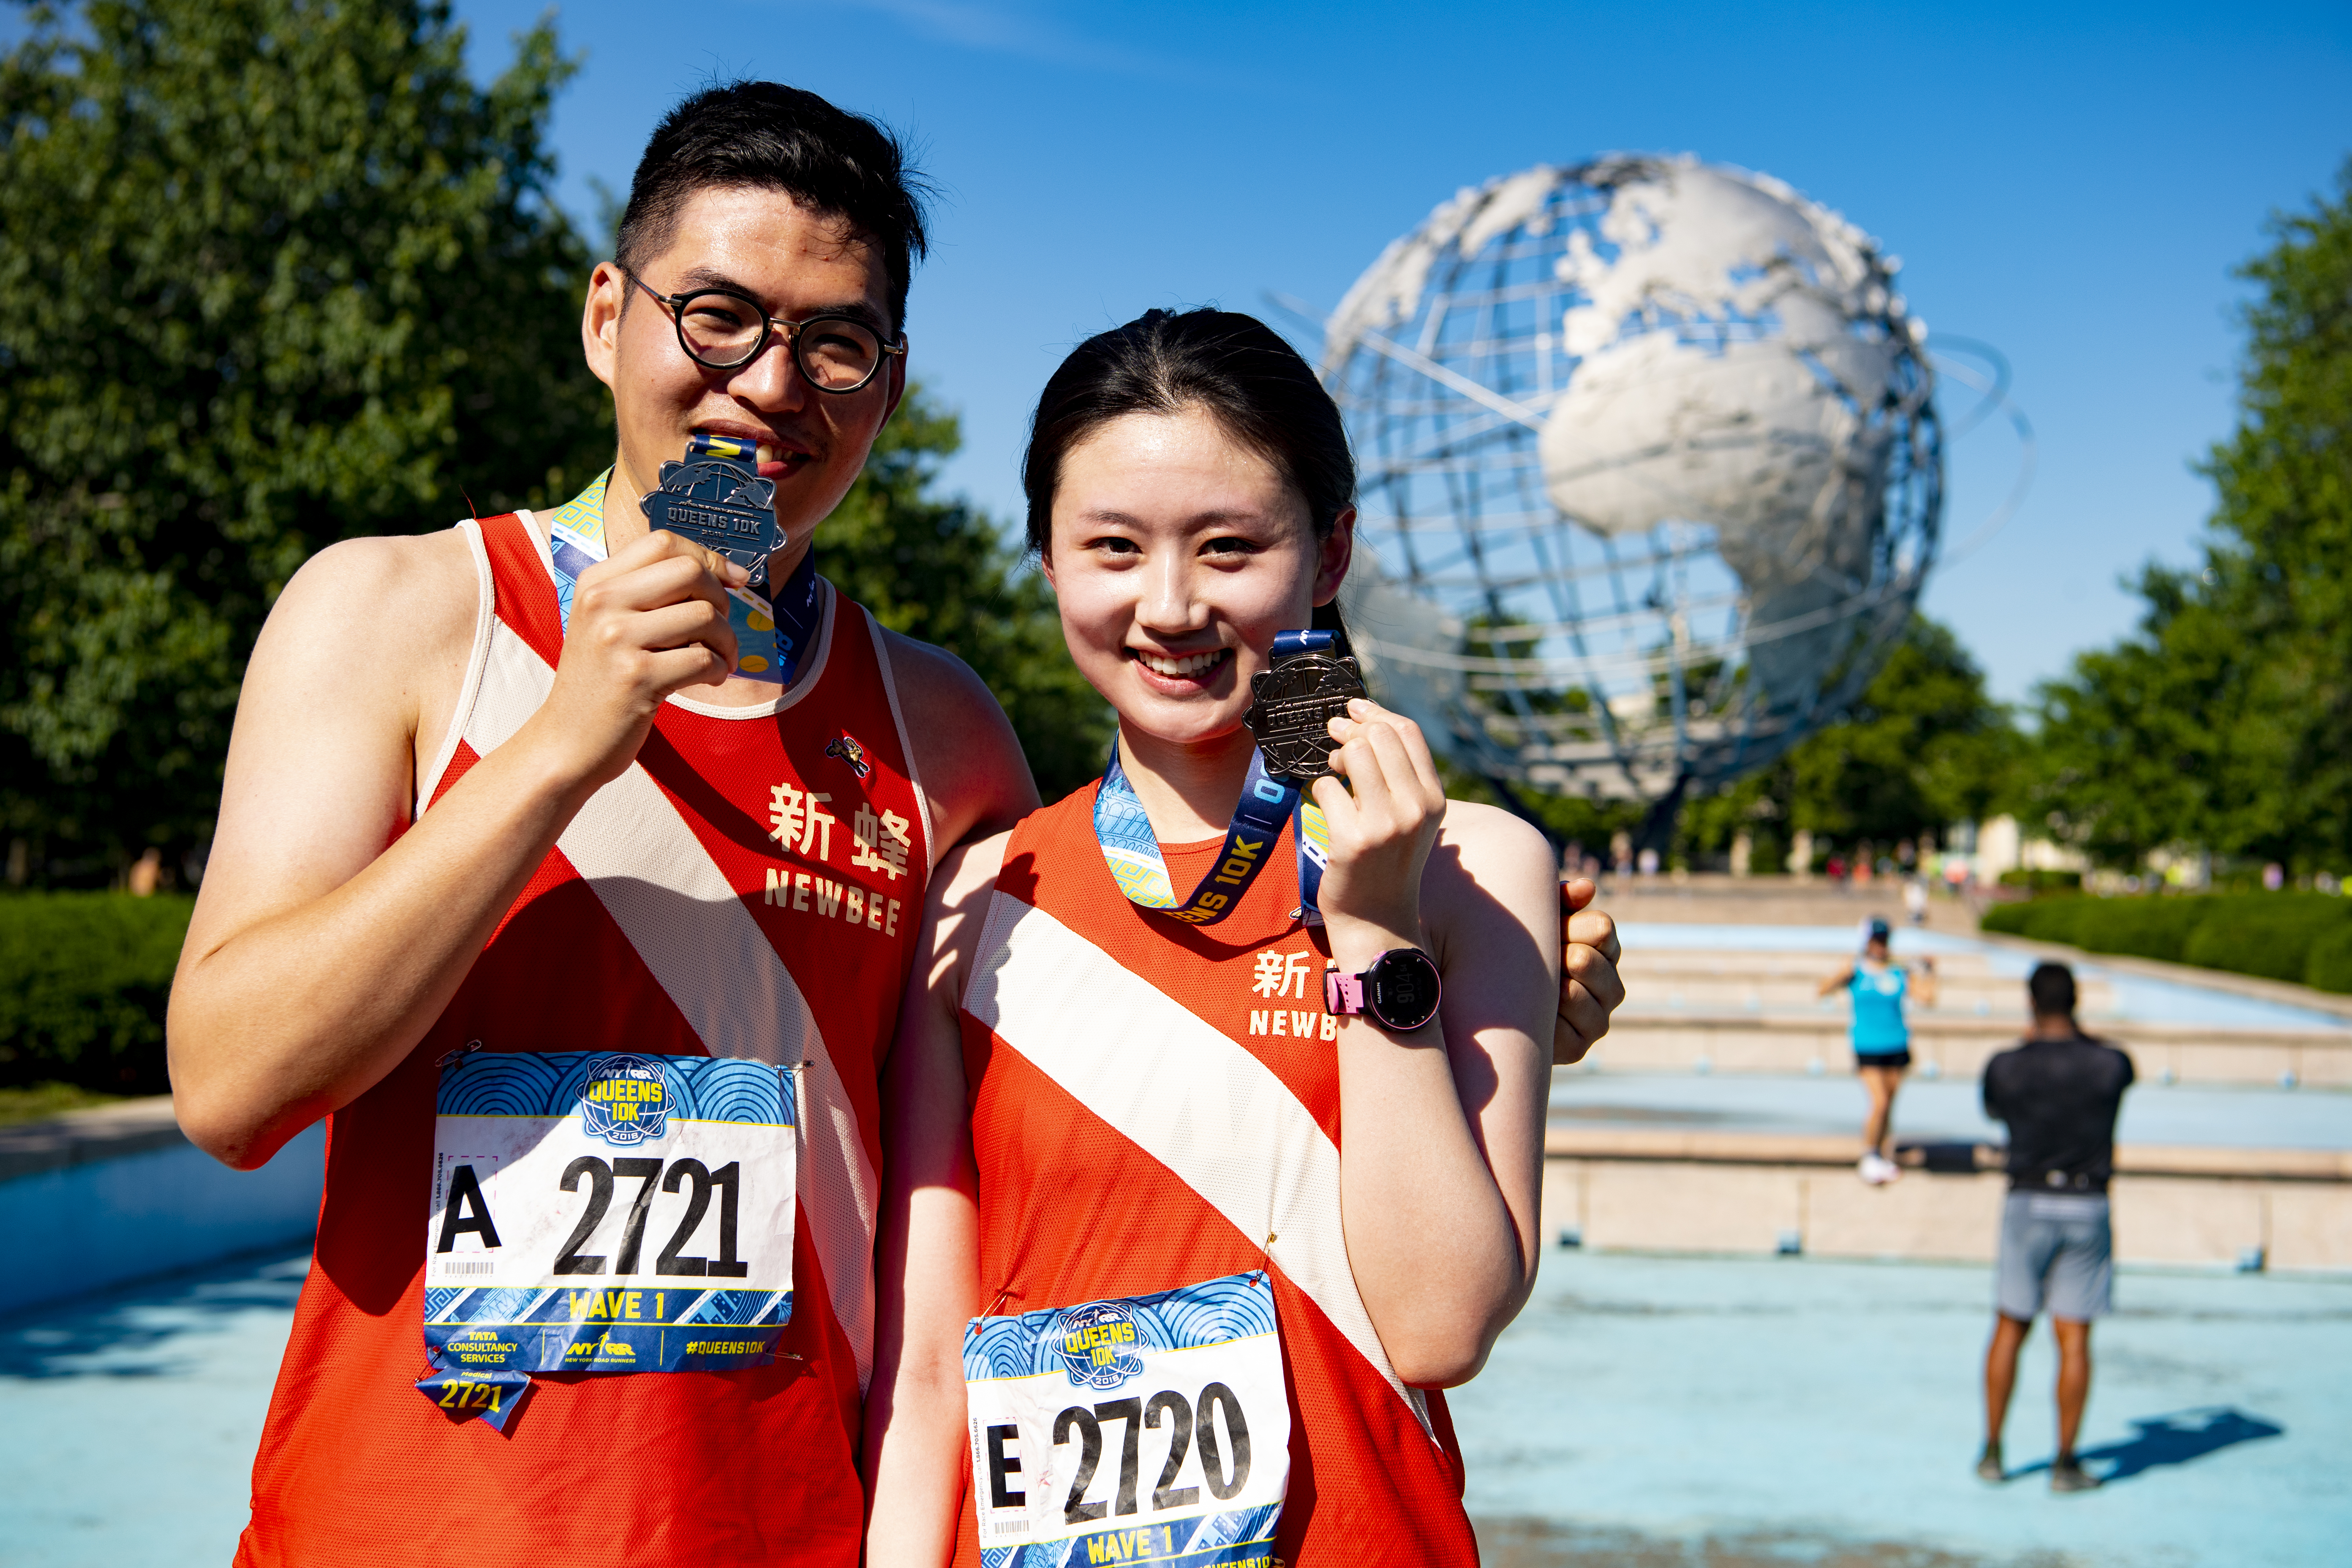 Runners holding their NYRR Queens 10K finisher medals in front of the Unisphere in Flushing Meadows Corona Park